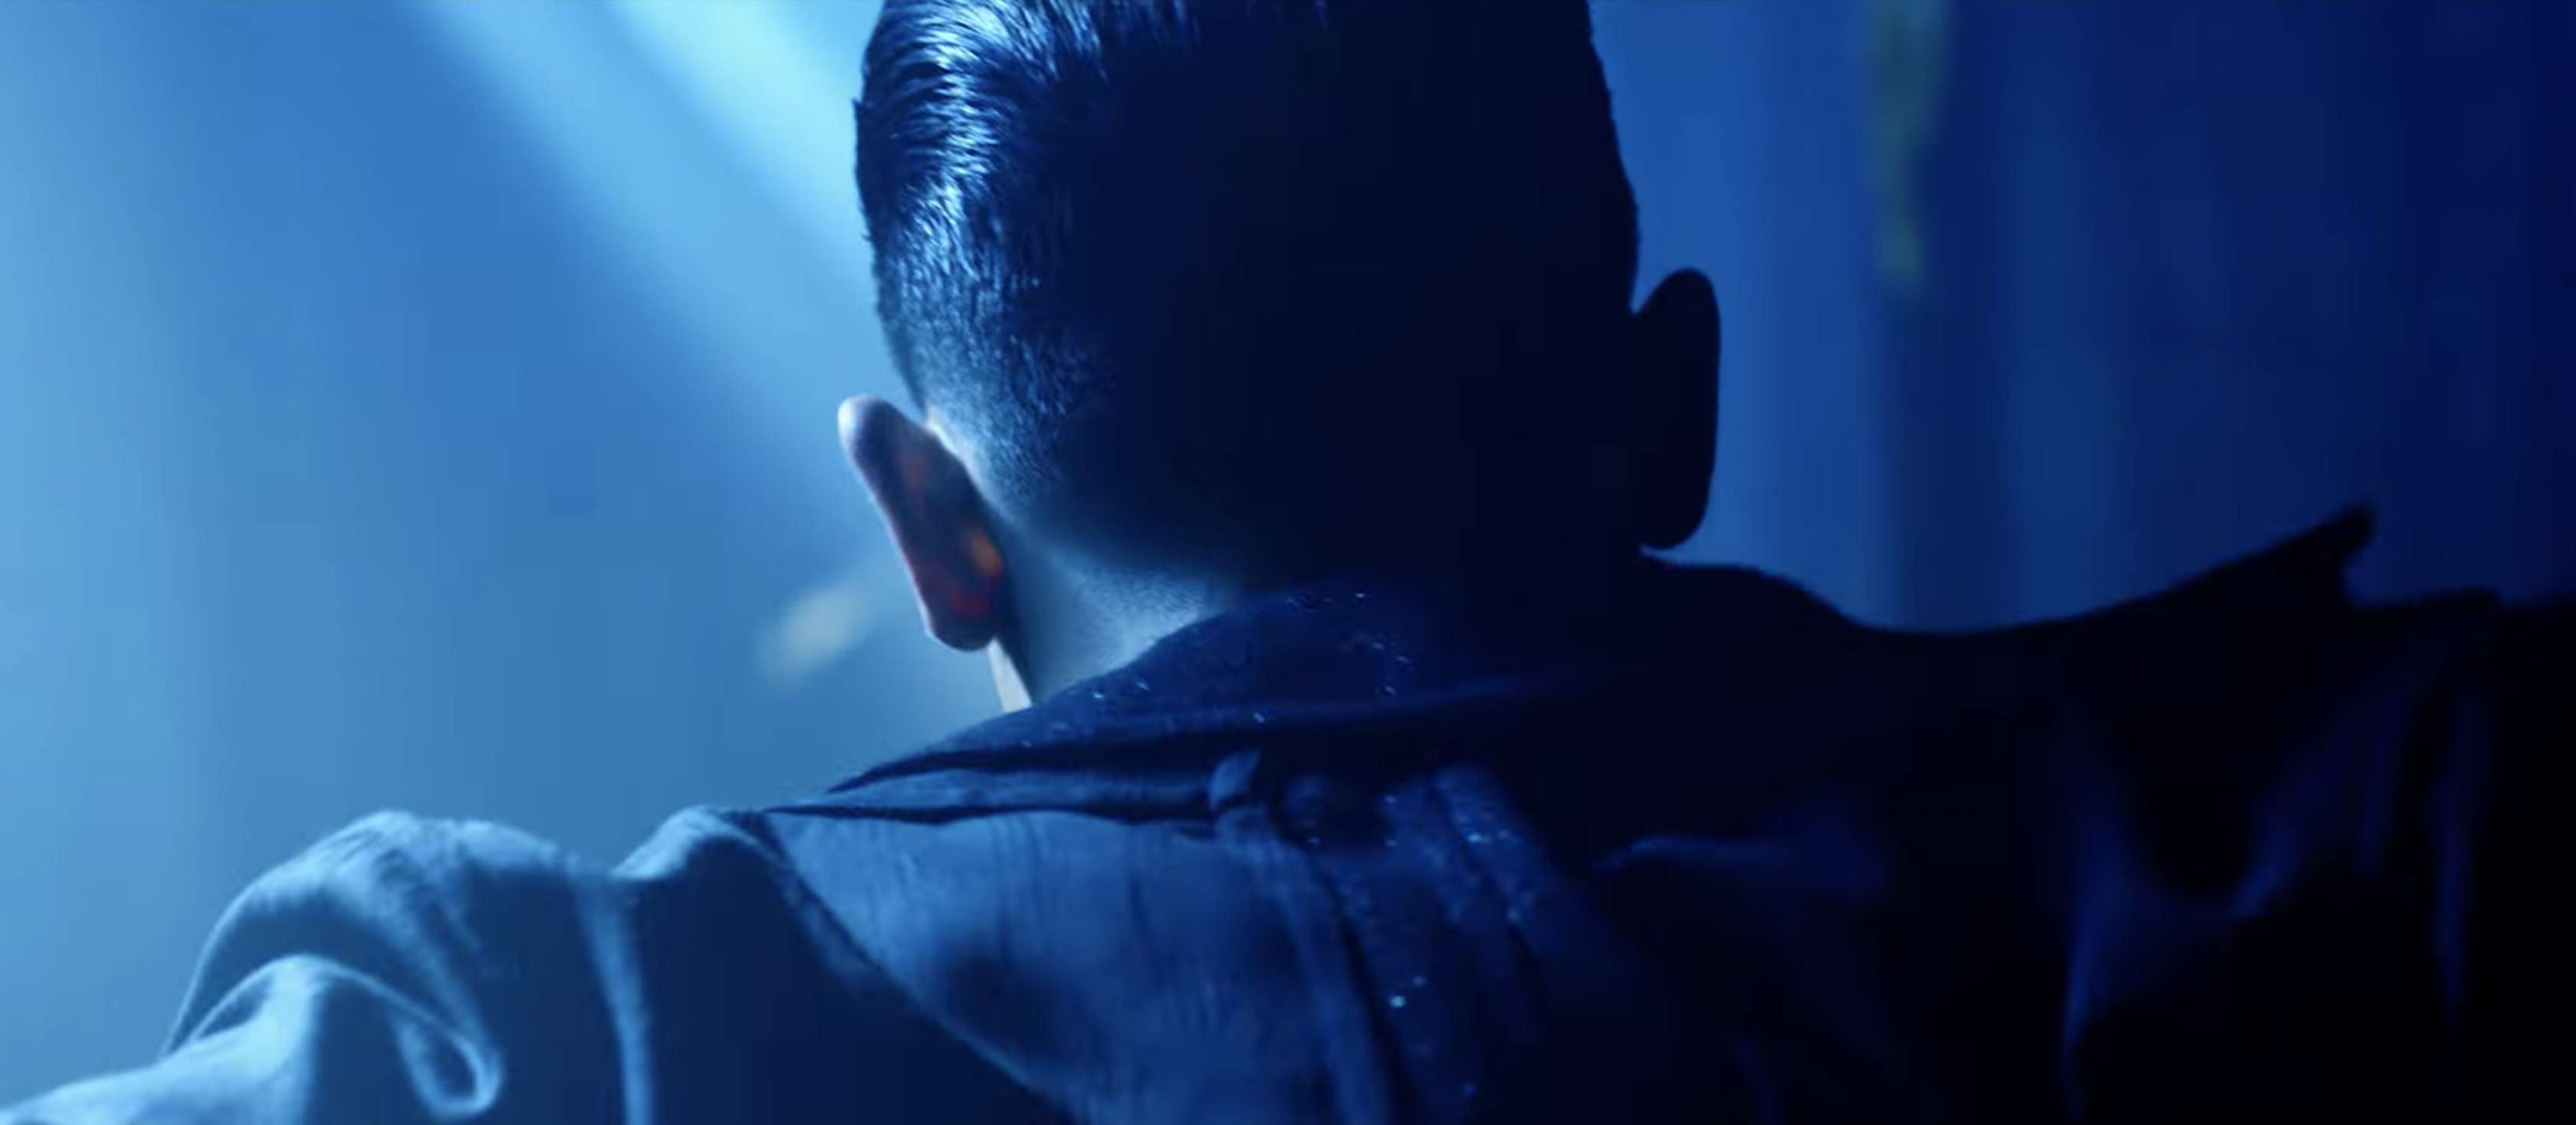 G-Eazy Drops 'No Limit (REMIX)' Video with A$AP Rocky